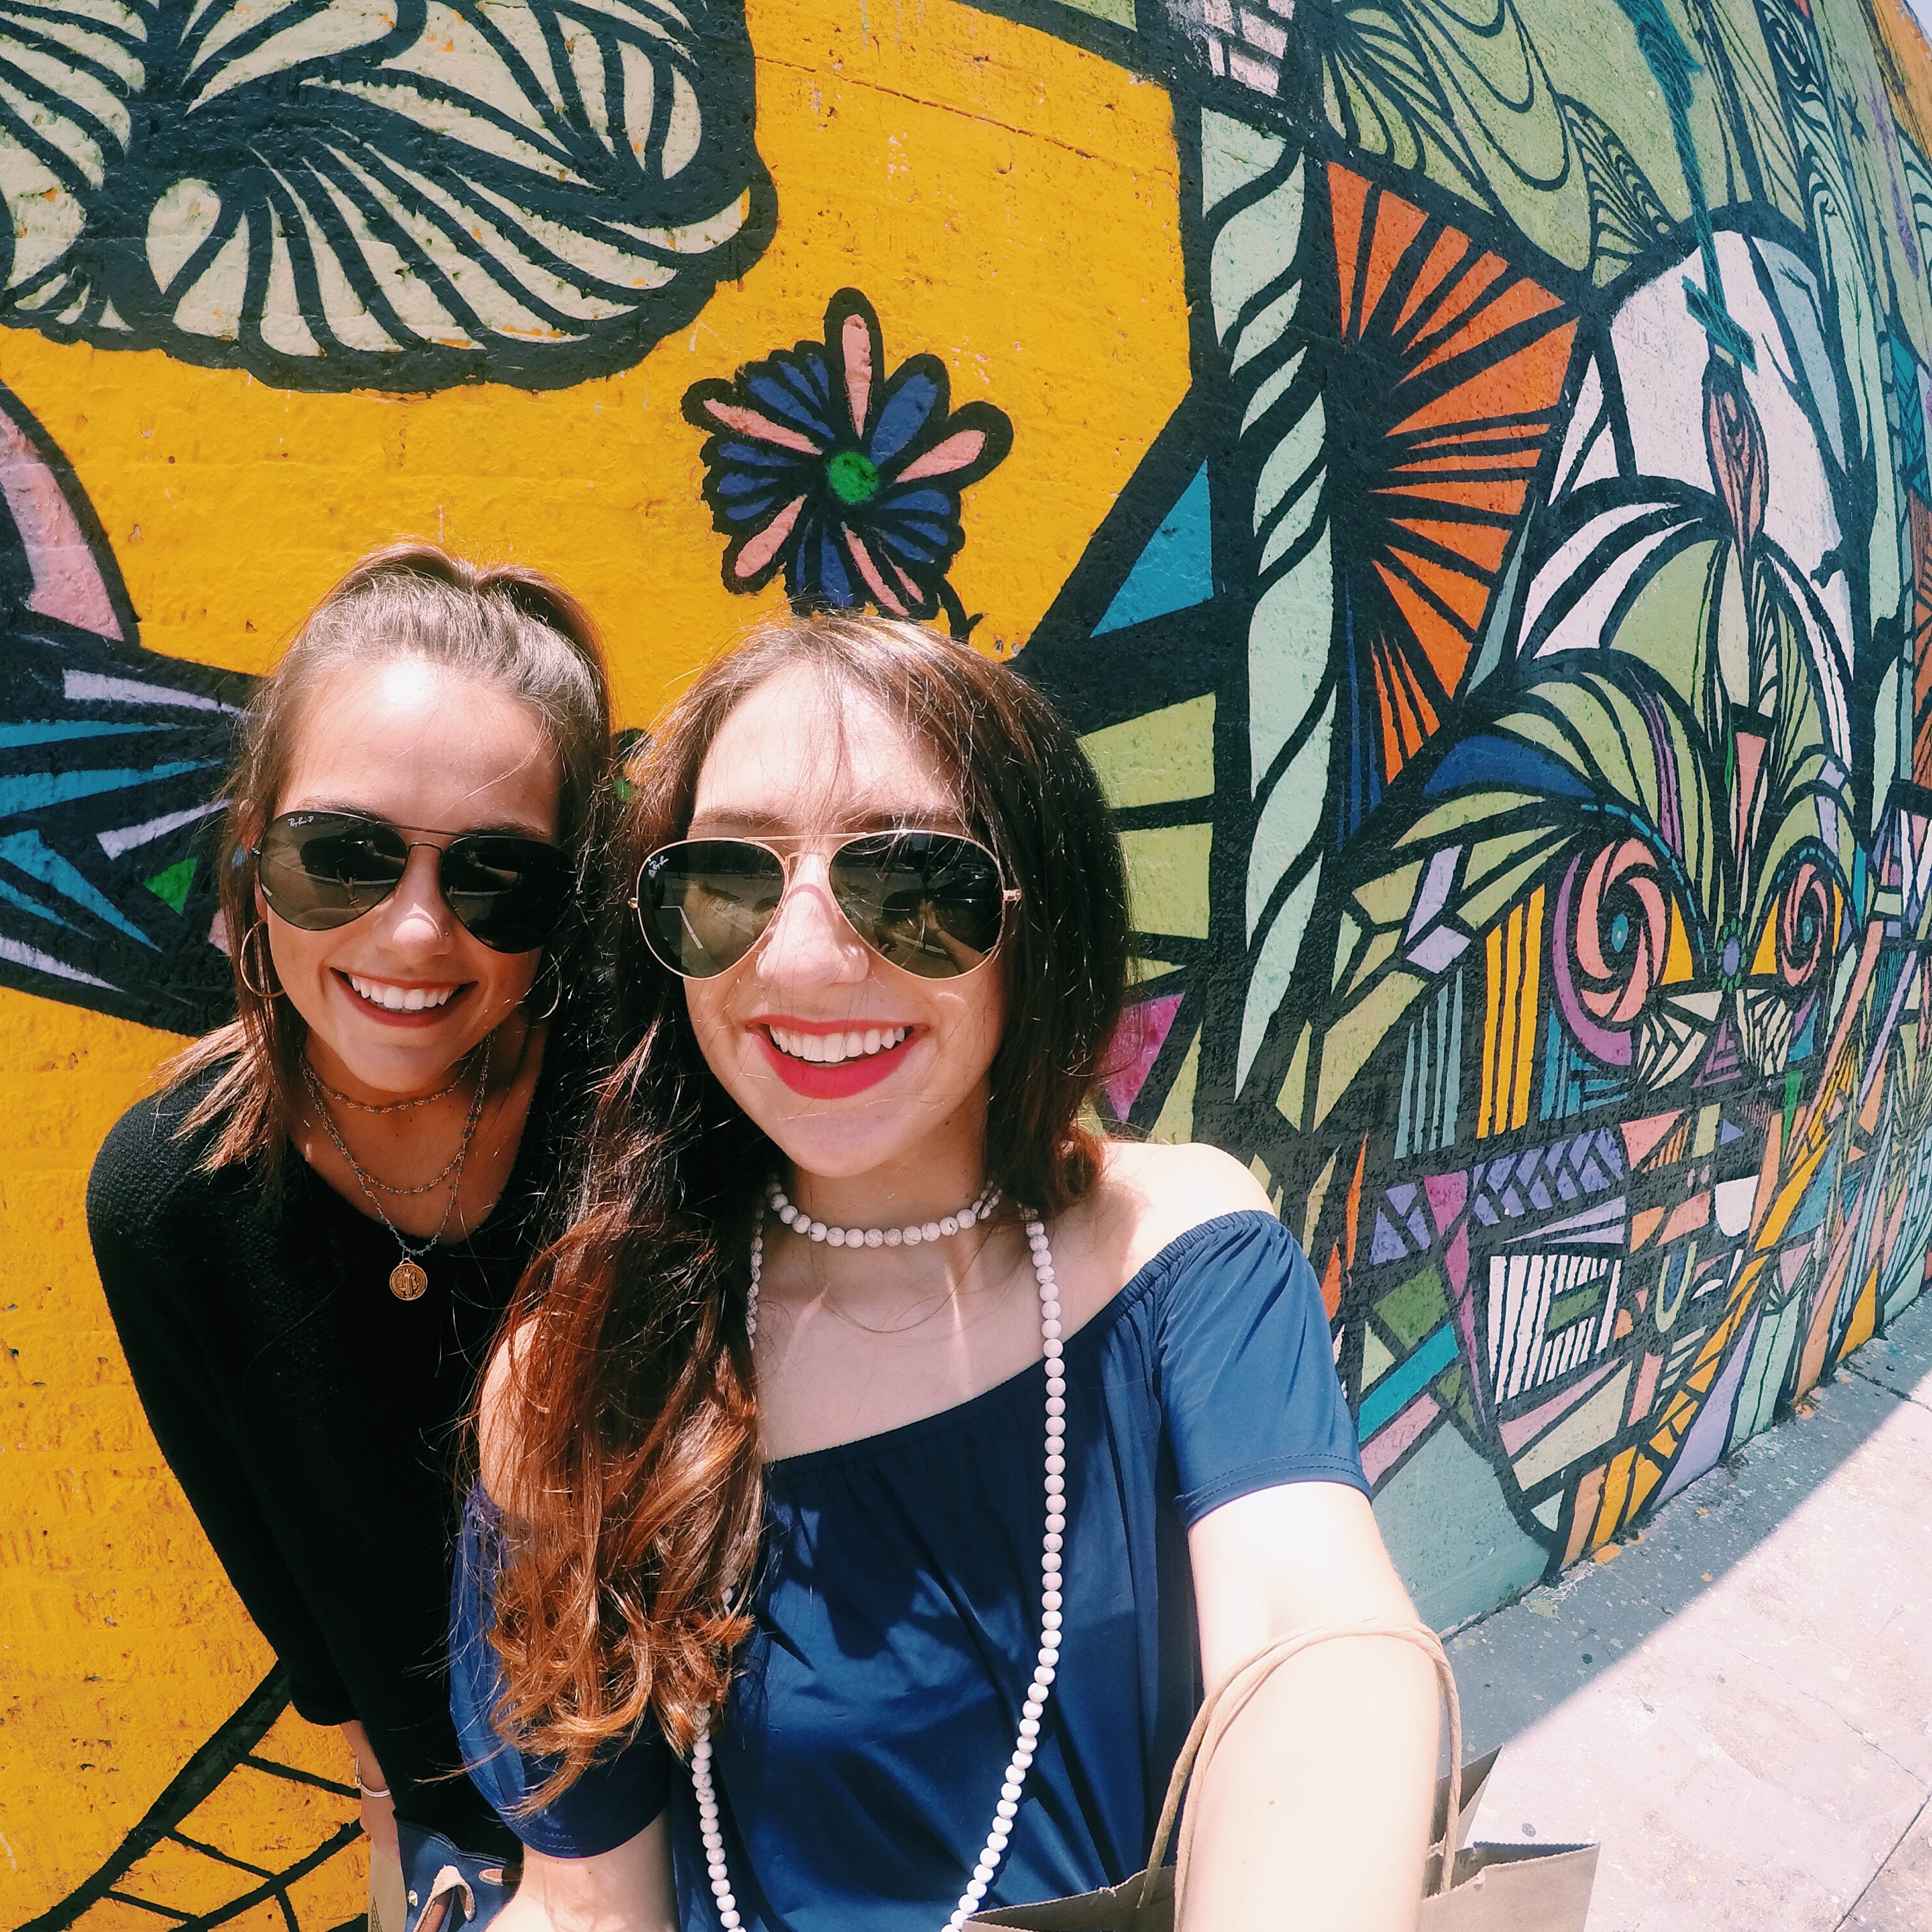 DCIM100GOPROGOPR1864. Processed with VSCO with c1 preset